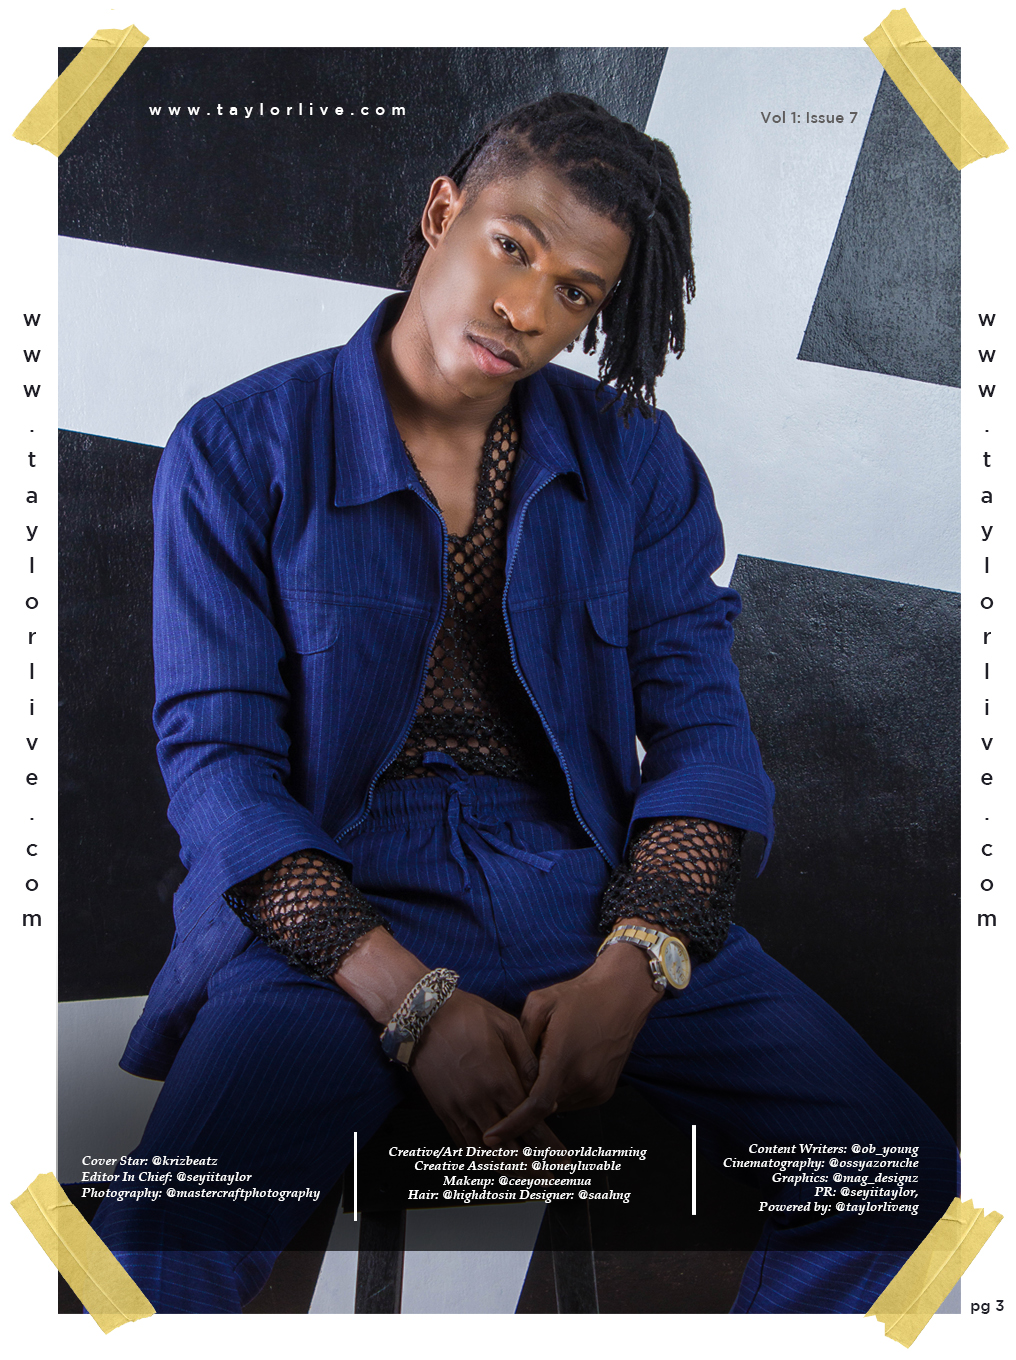 The Drummer Boy! KRIZBEATZ Covers Taylor Live Magazine's Latest Issue